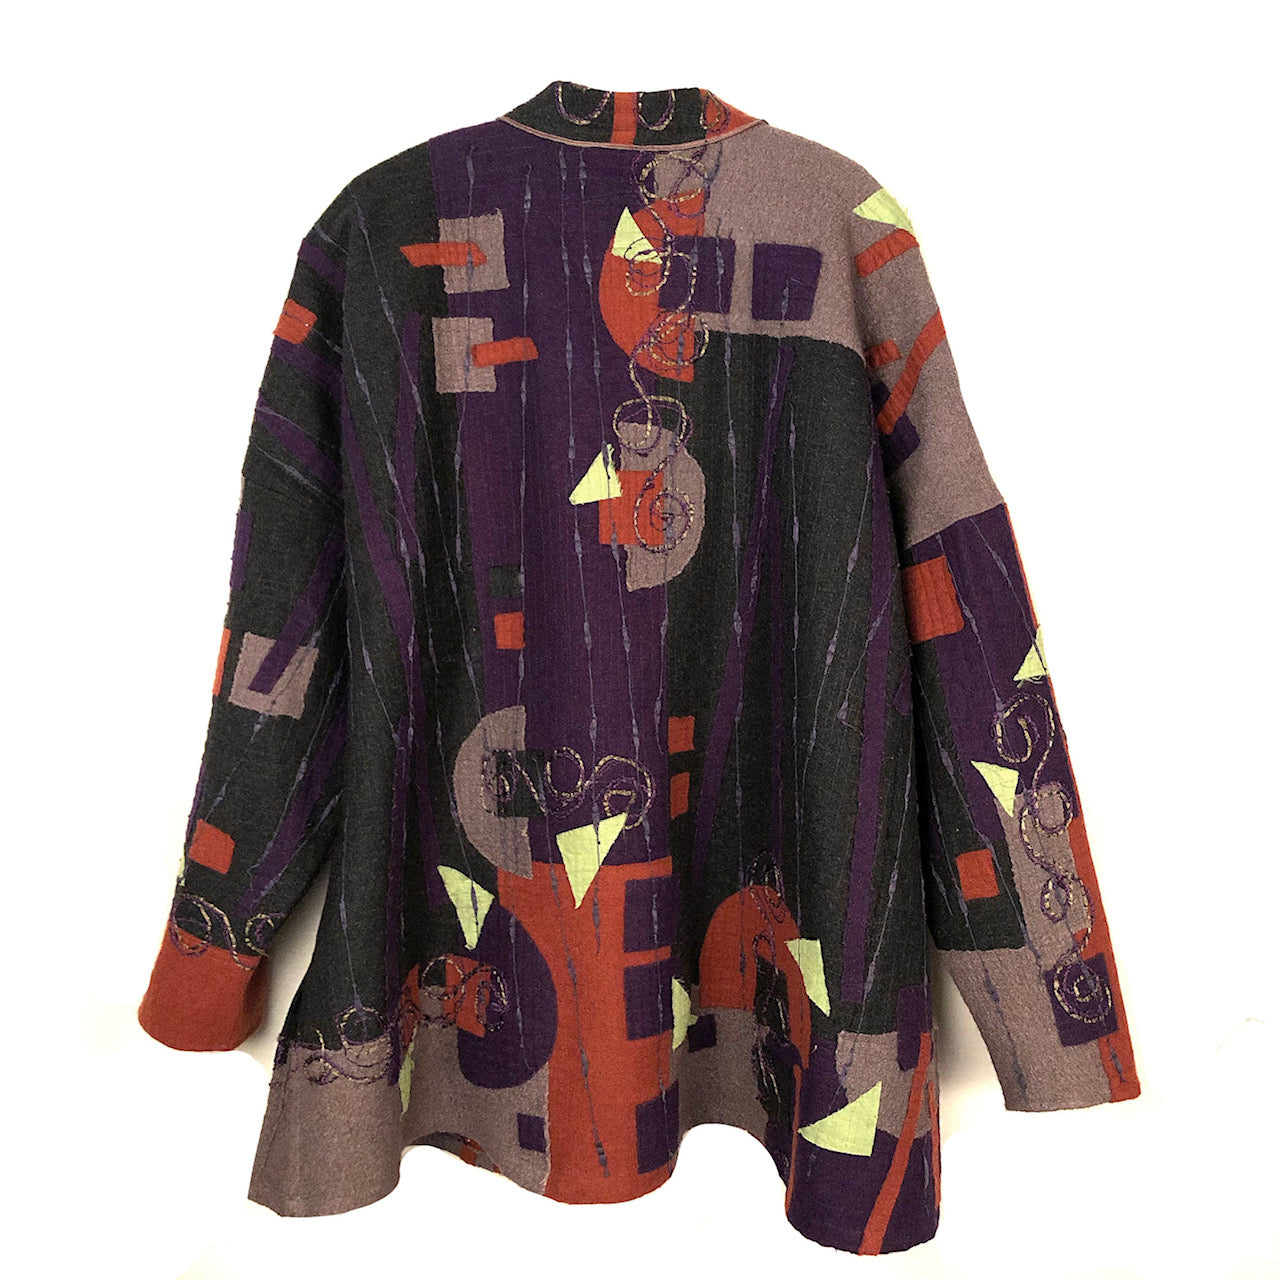 Diane Prekup Jacket, Saturday, Harvest Moon, L